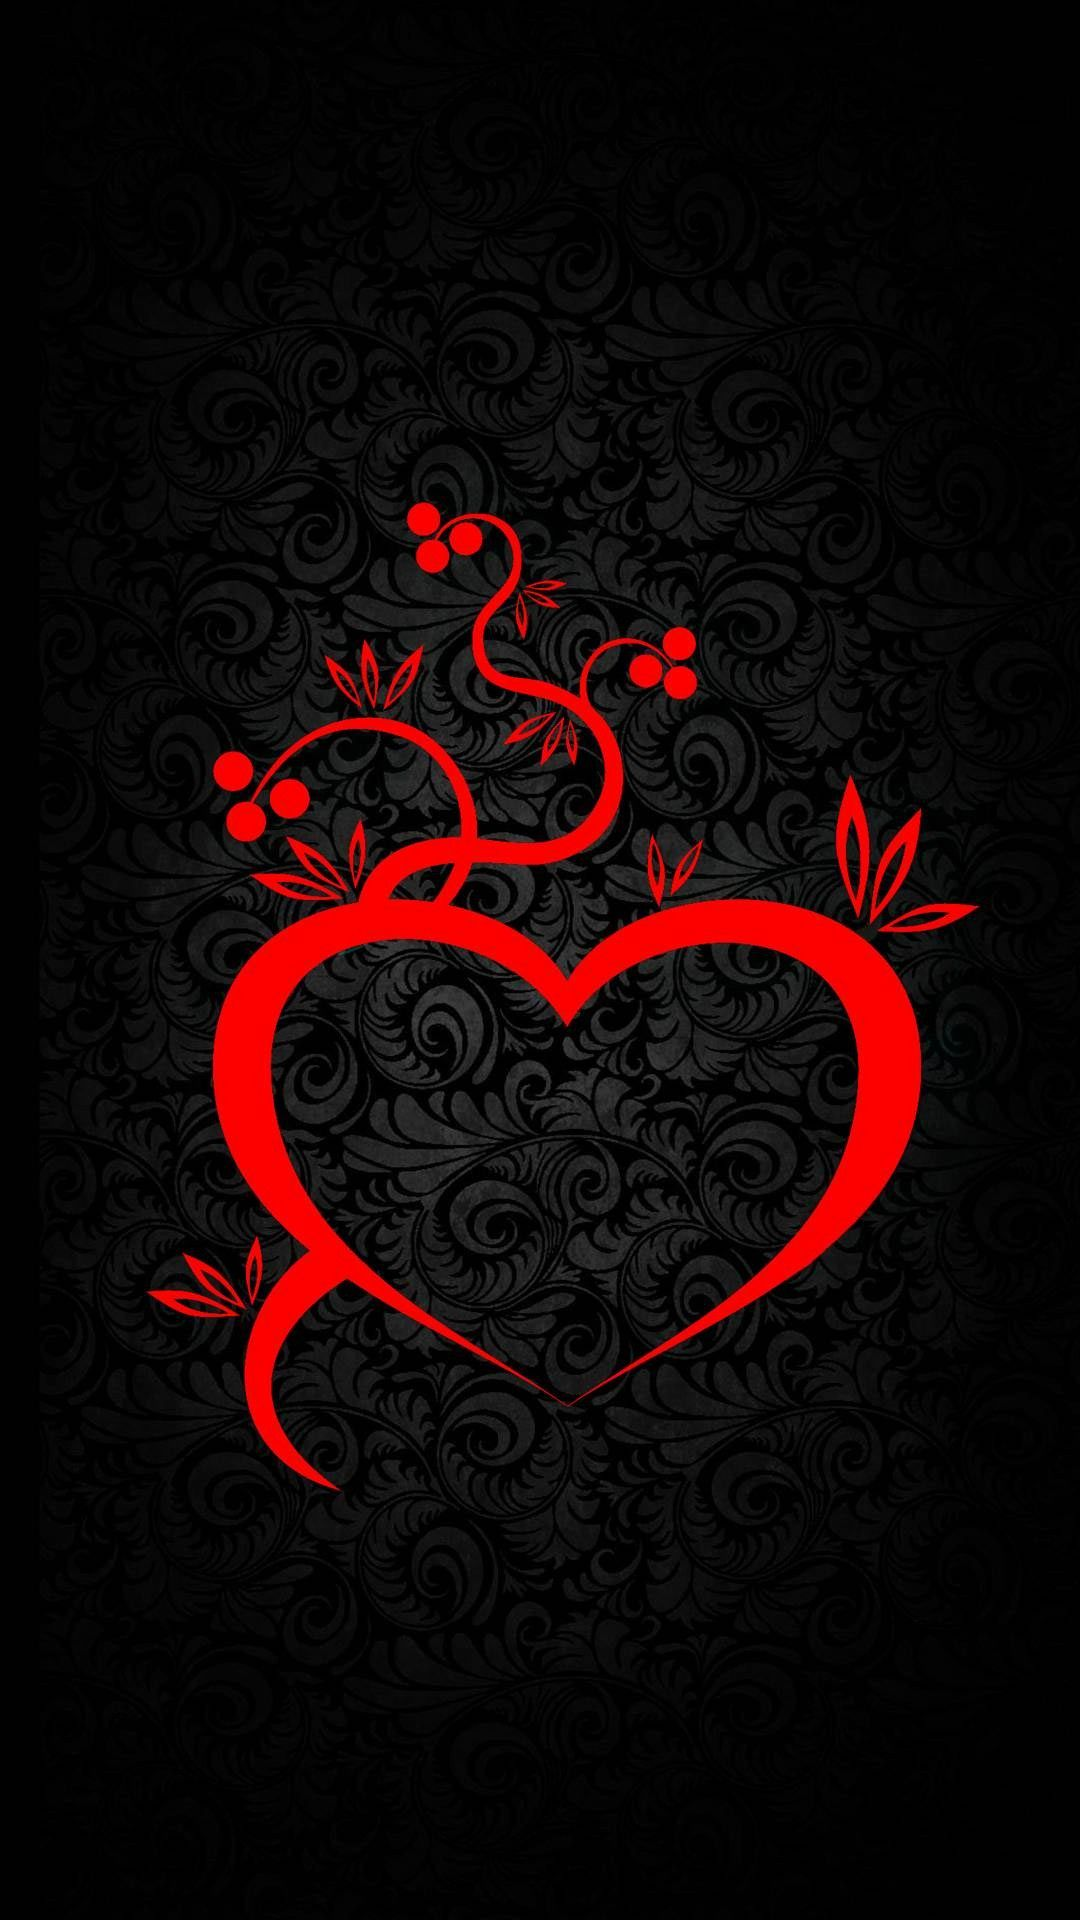 Heart Iphone Wallpaper Heart Wallpaper Red And Black Wallpaper